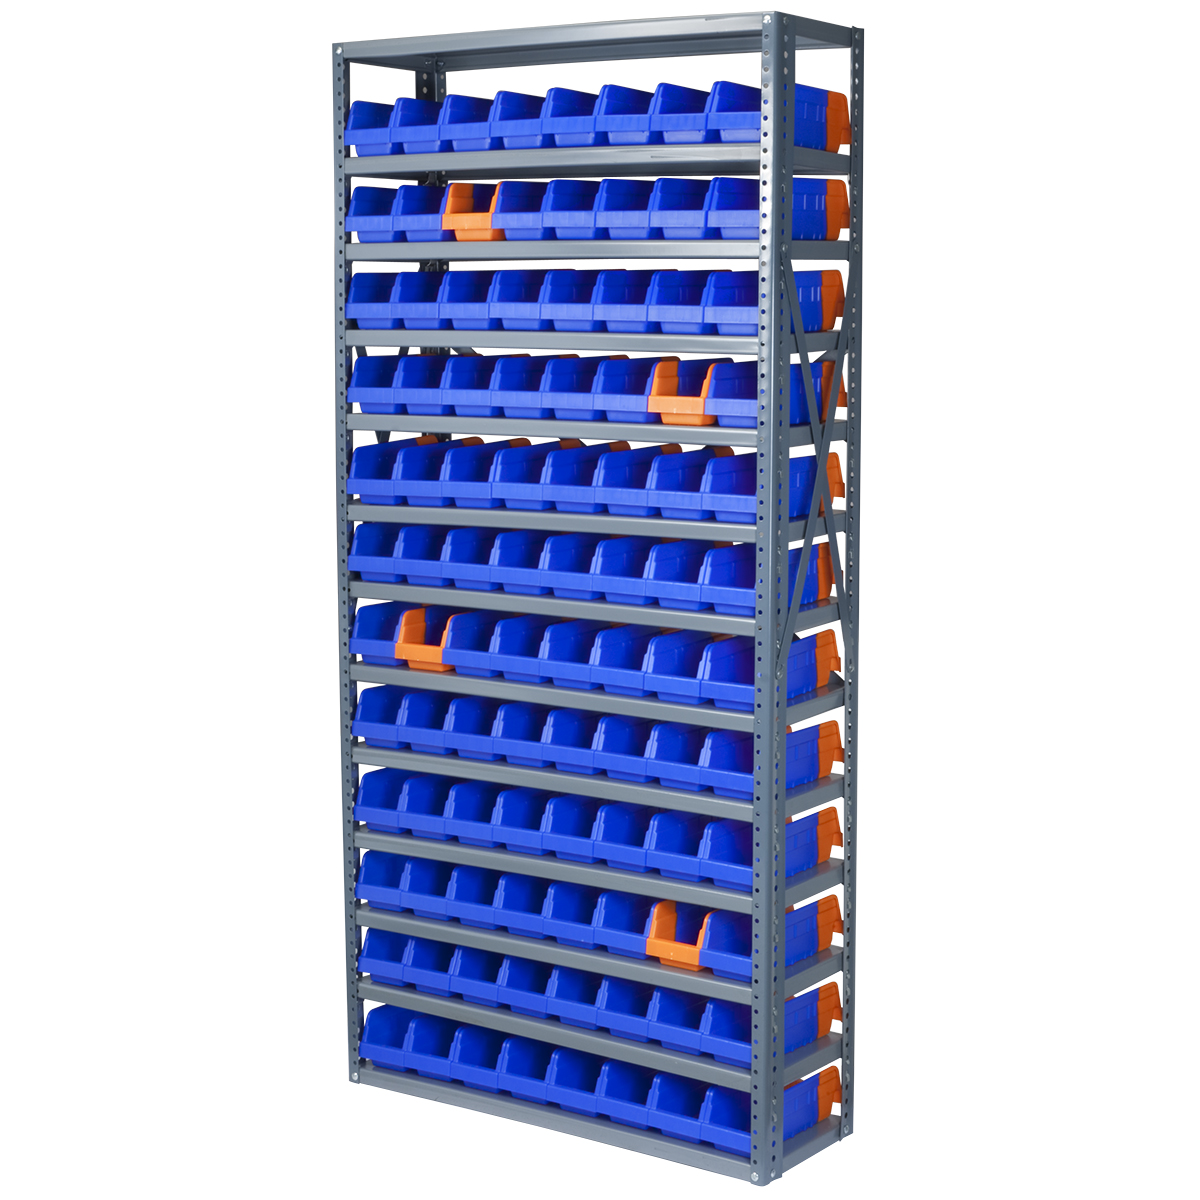 Steel Shelving Kit, 12x36x79, 96 Bins, Gray/Blue/Orange (AS127936442B).  This item sold in carton quantities of 1.